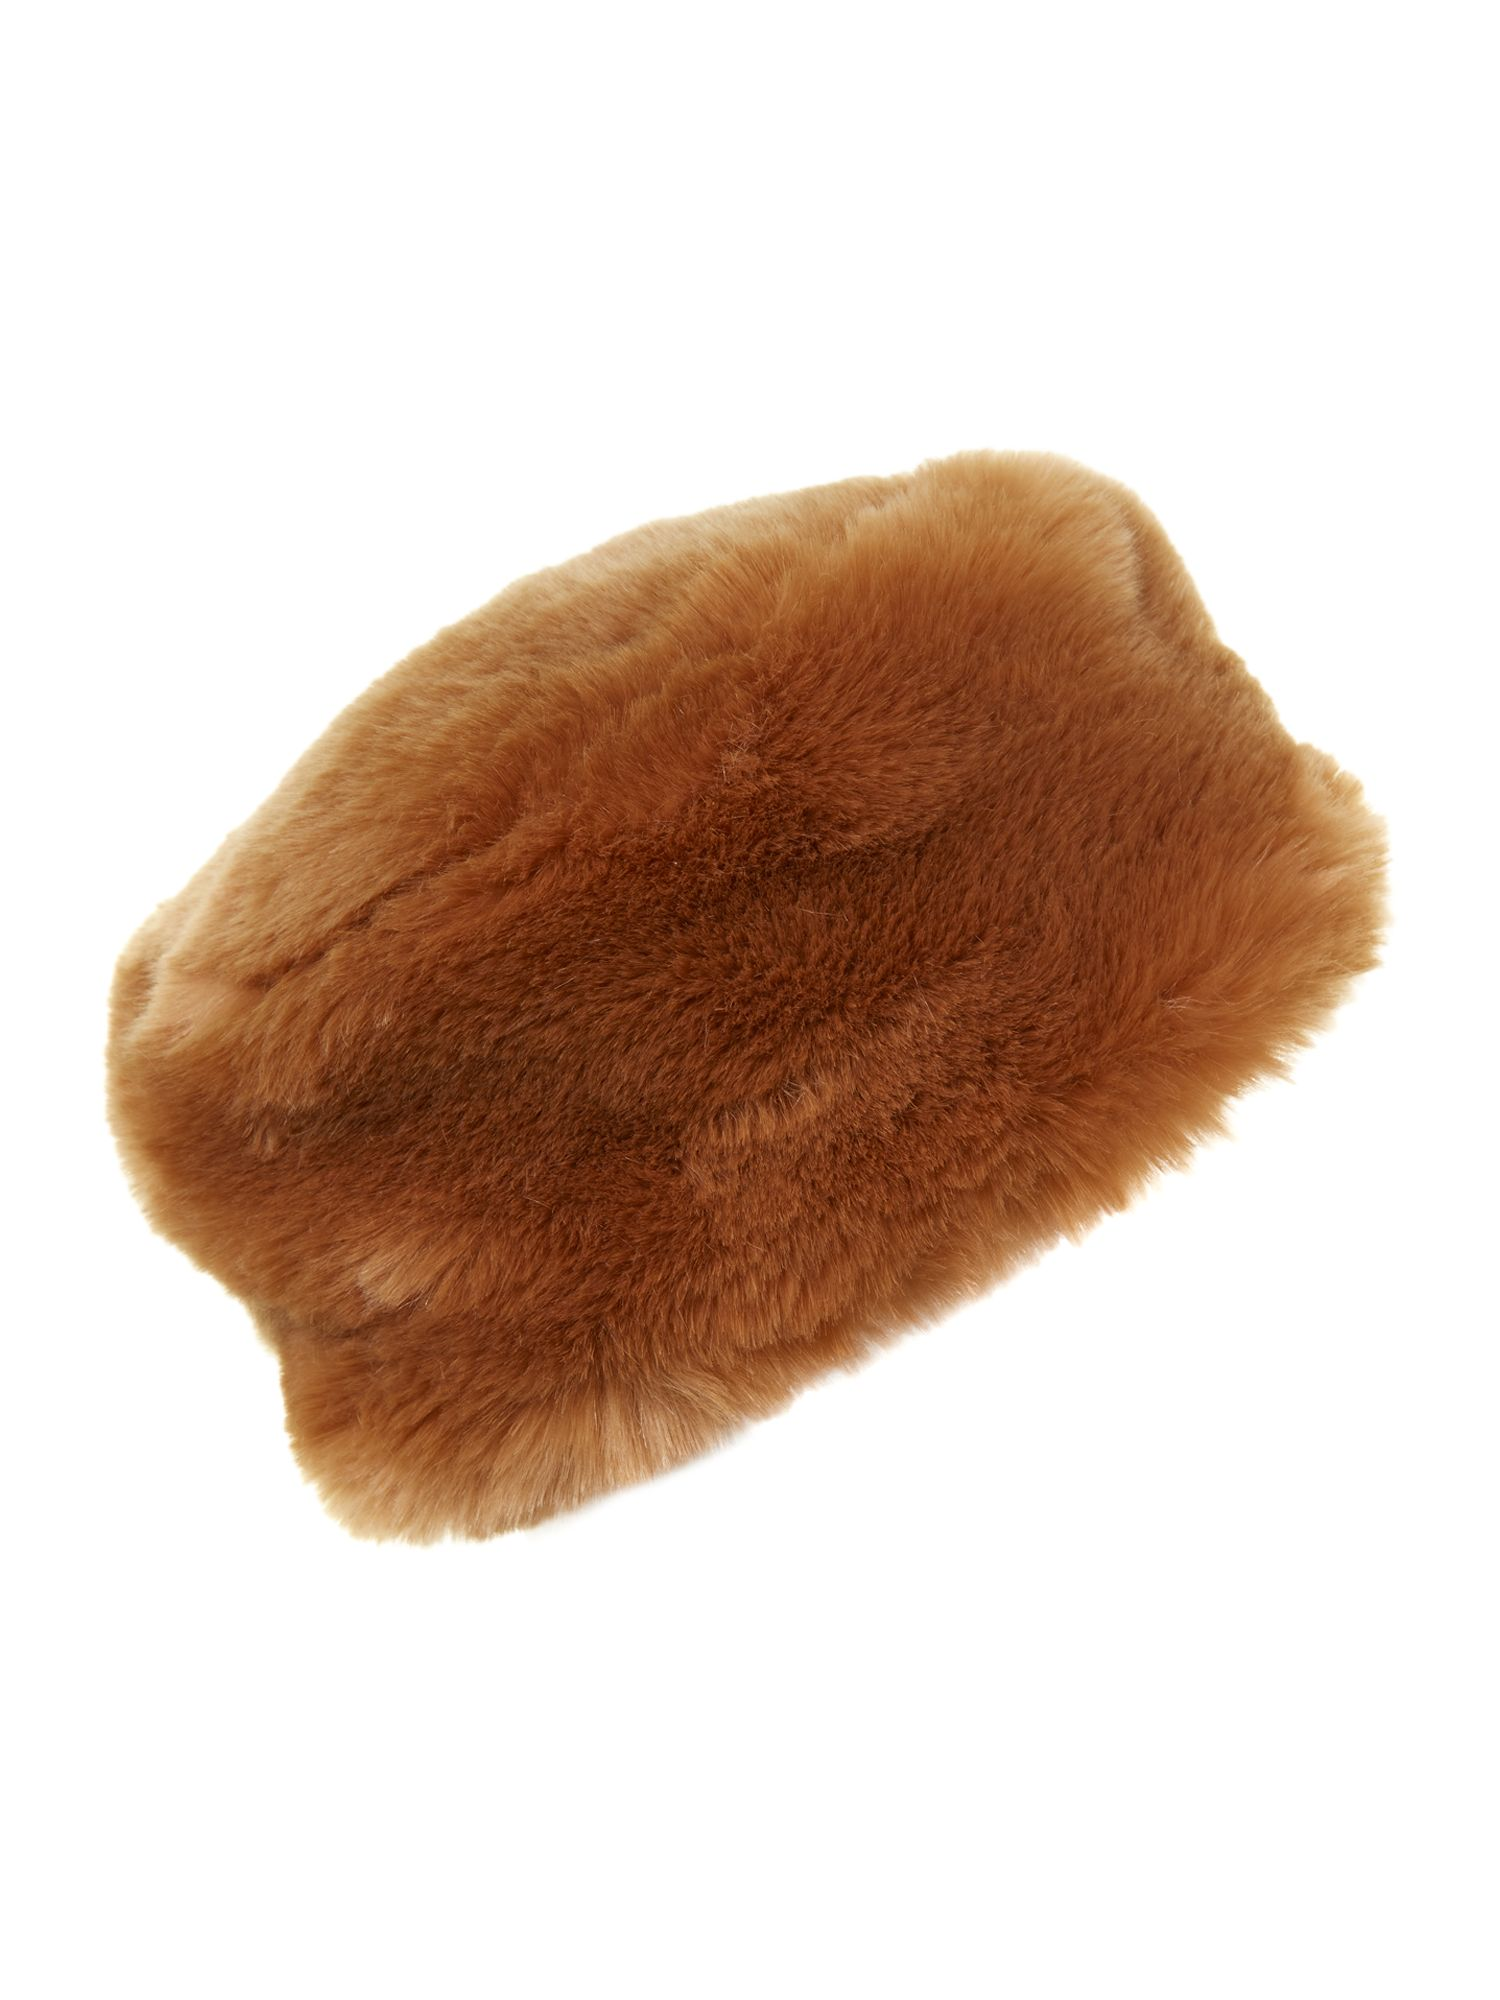 Faux fur cossack hat natural